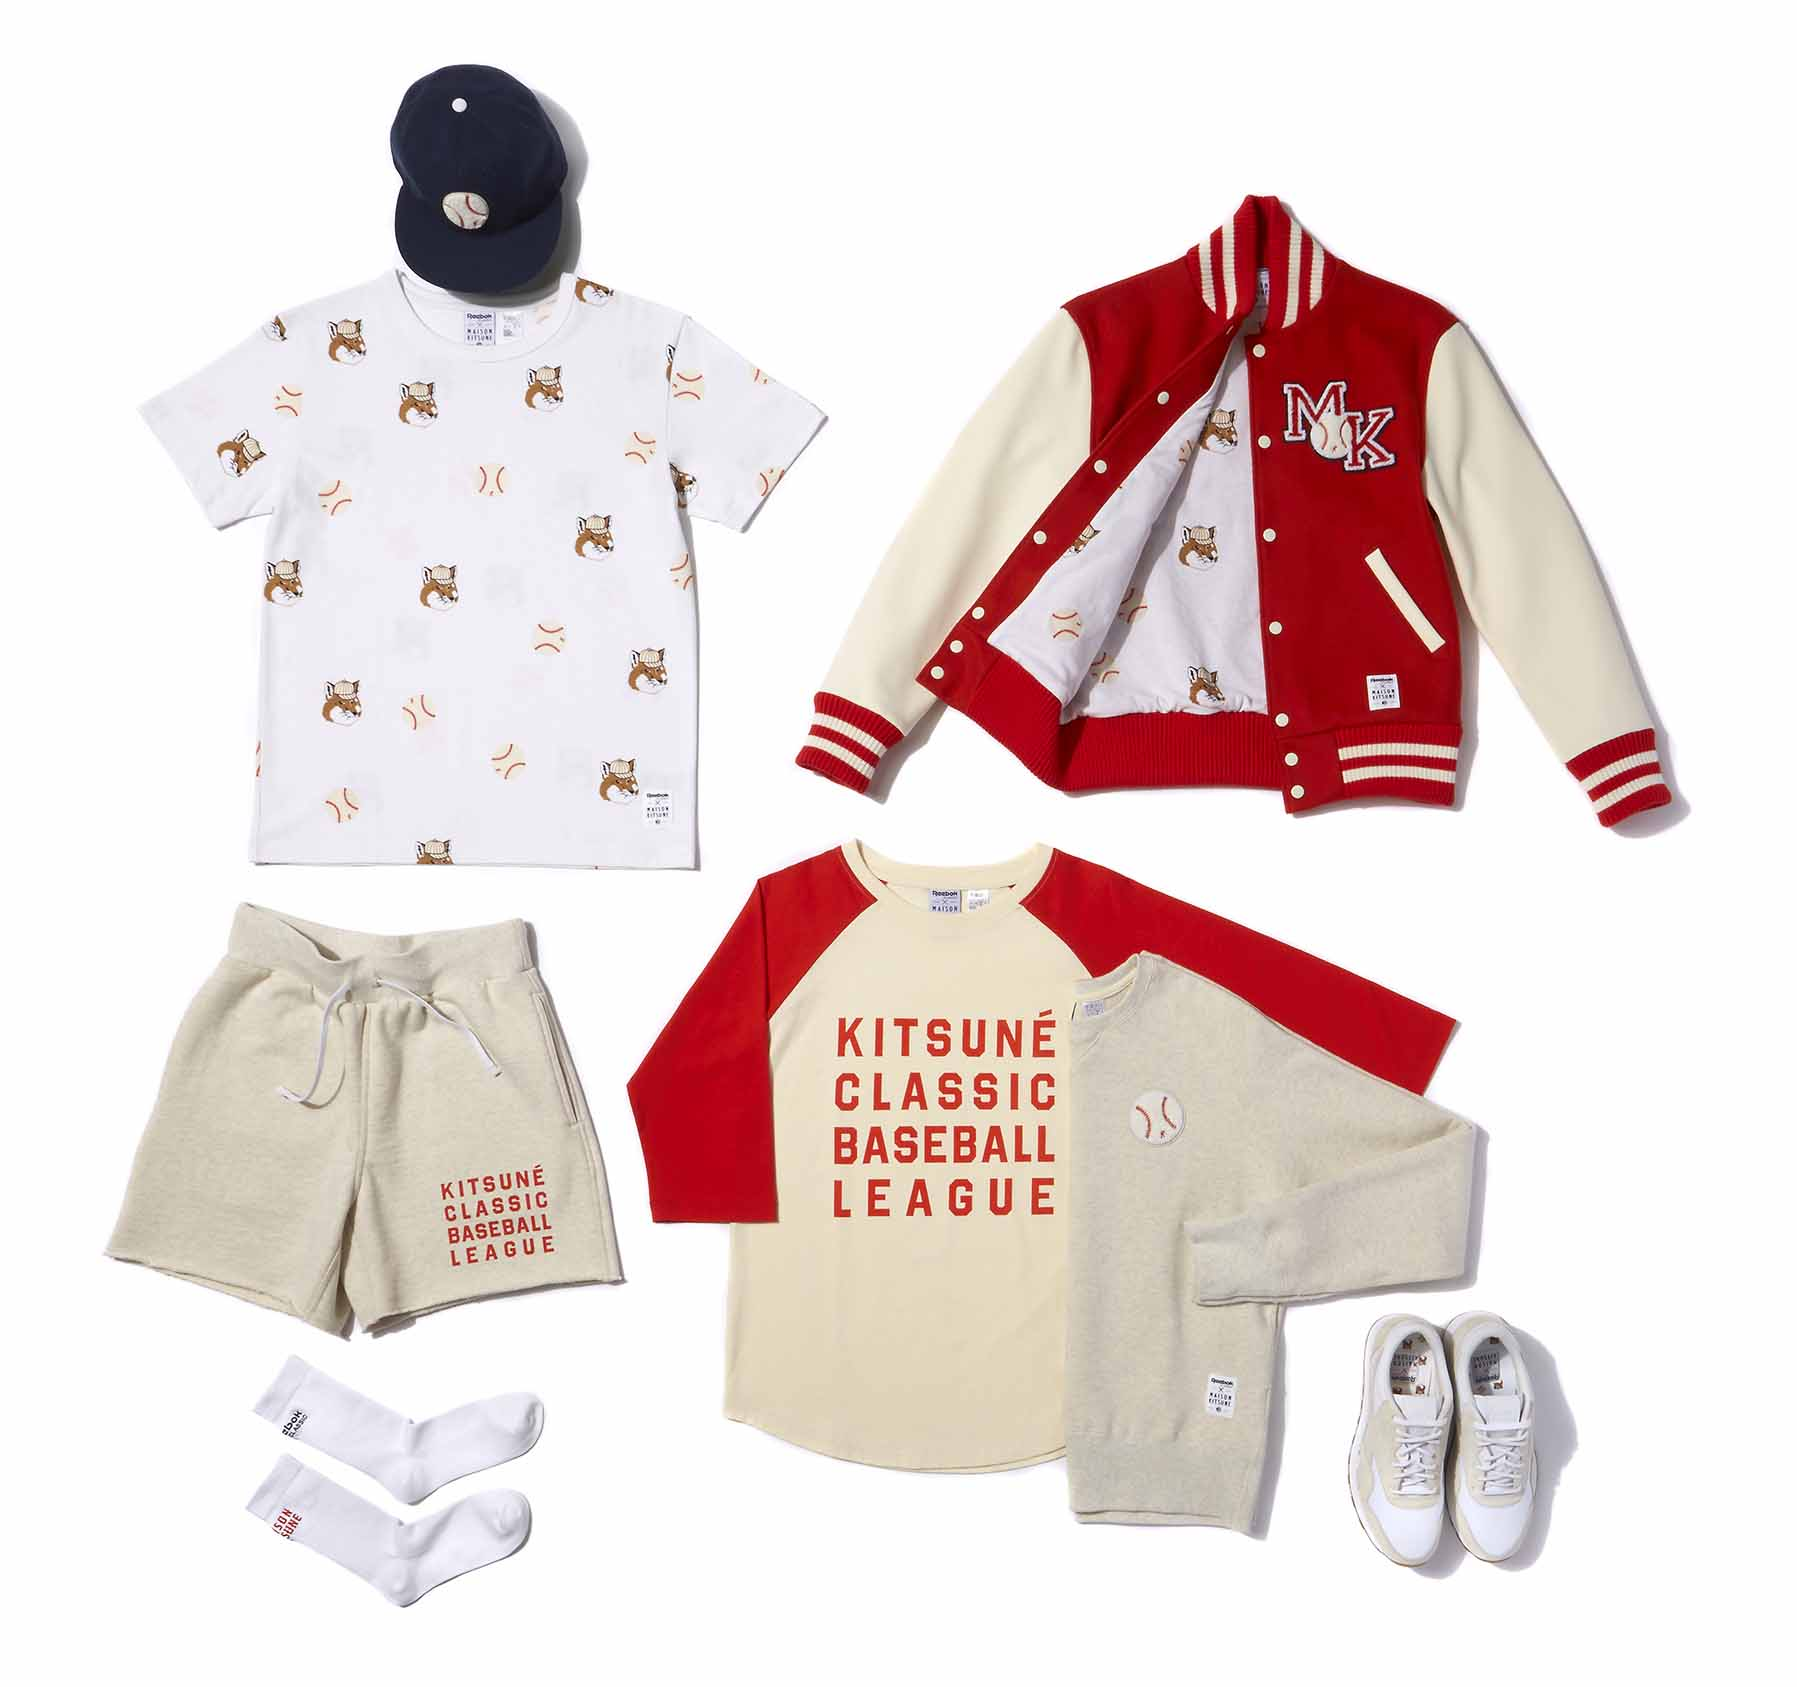 "REEBOK CLASSIC ET MAISON KITSUNÉ DÉVOILENT LEUR COLLECTION ""BASEBALL LEAGUE"""